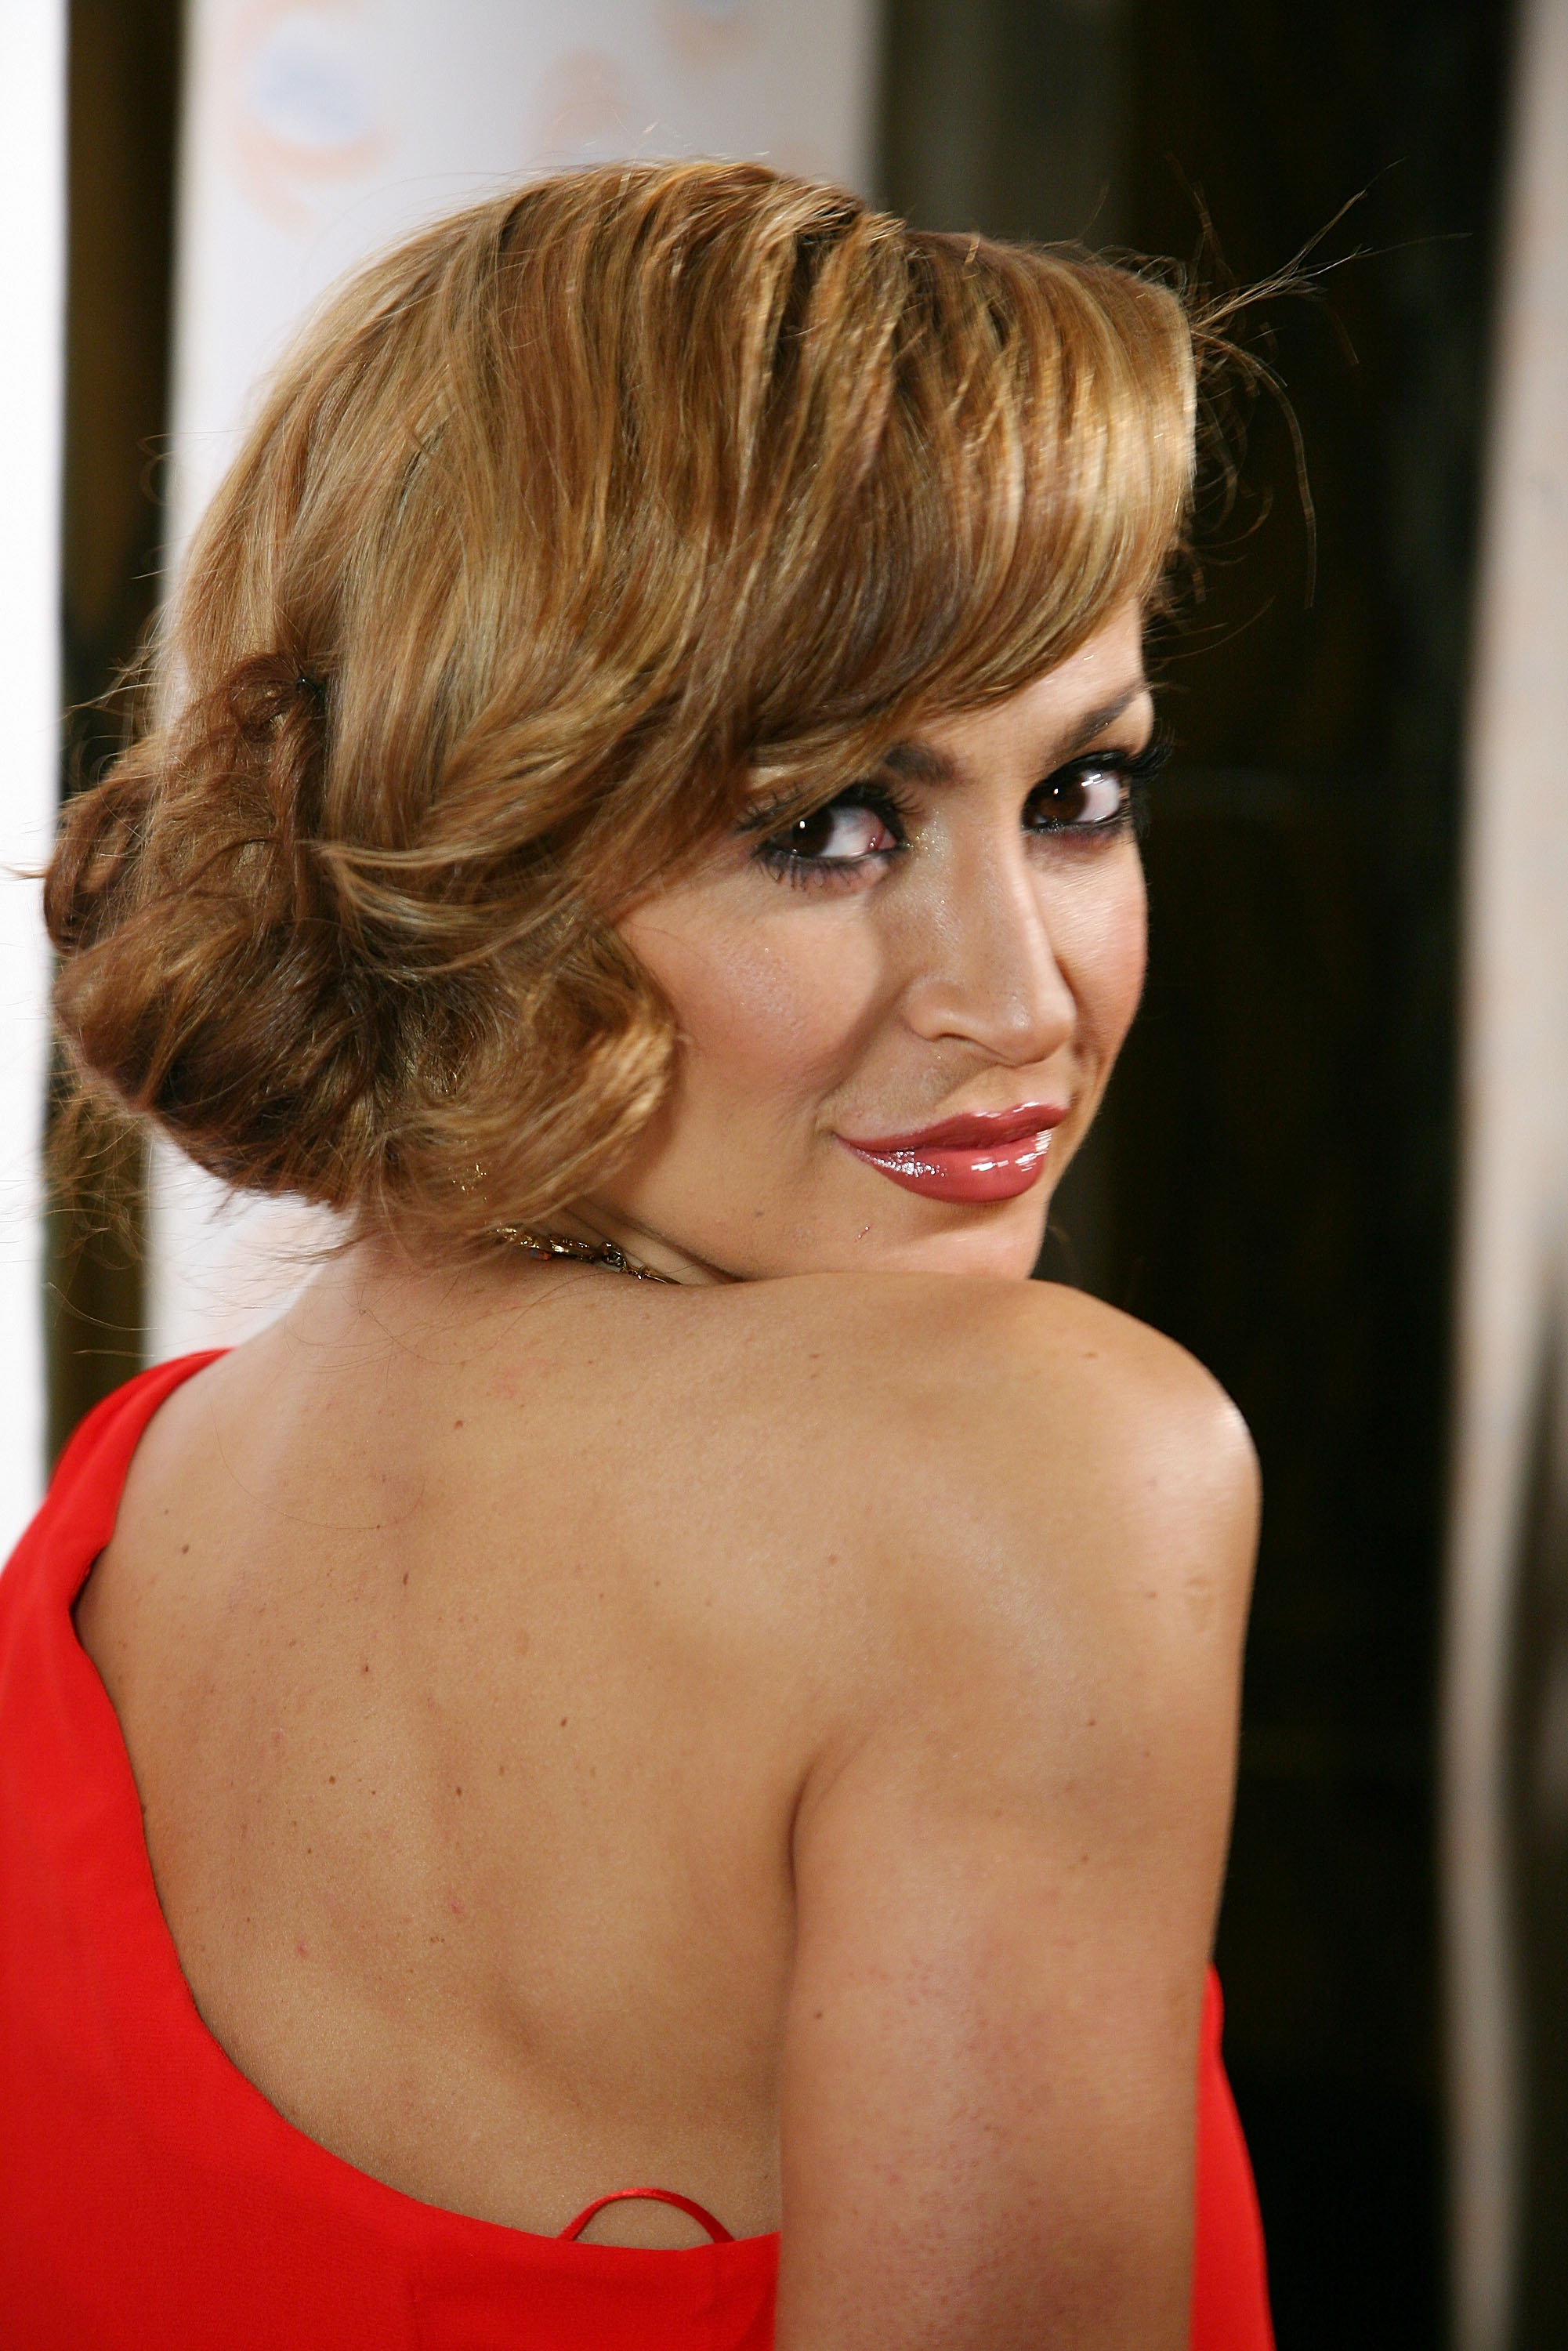 30369_Karina_Smirnoff_2008-11-07_-_Lupus_LA0s_Sixth_Annual_Hollywood_Bag_Ladies_Luncheon_in_Beverly_H_0148_122_109lo.jpg